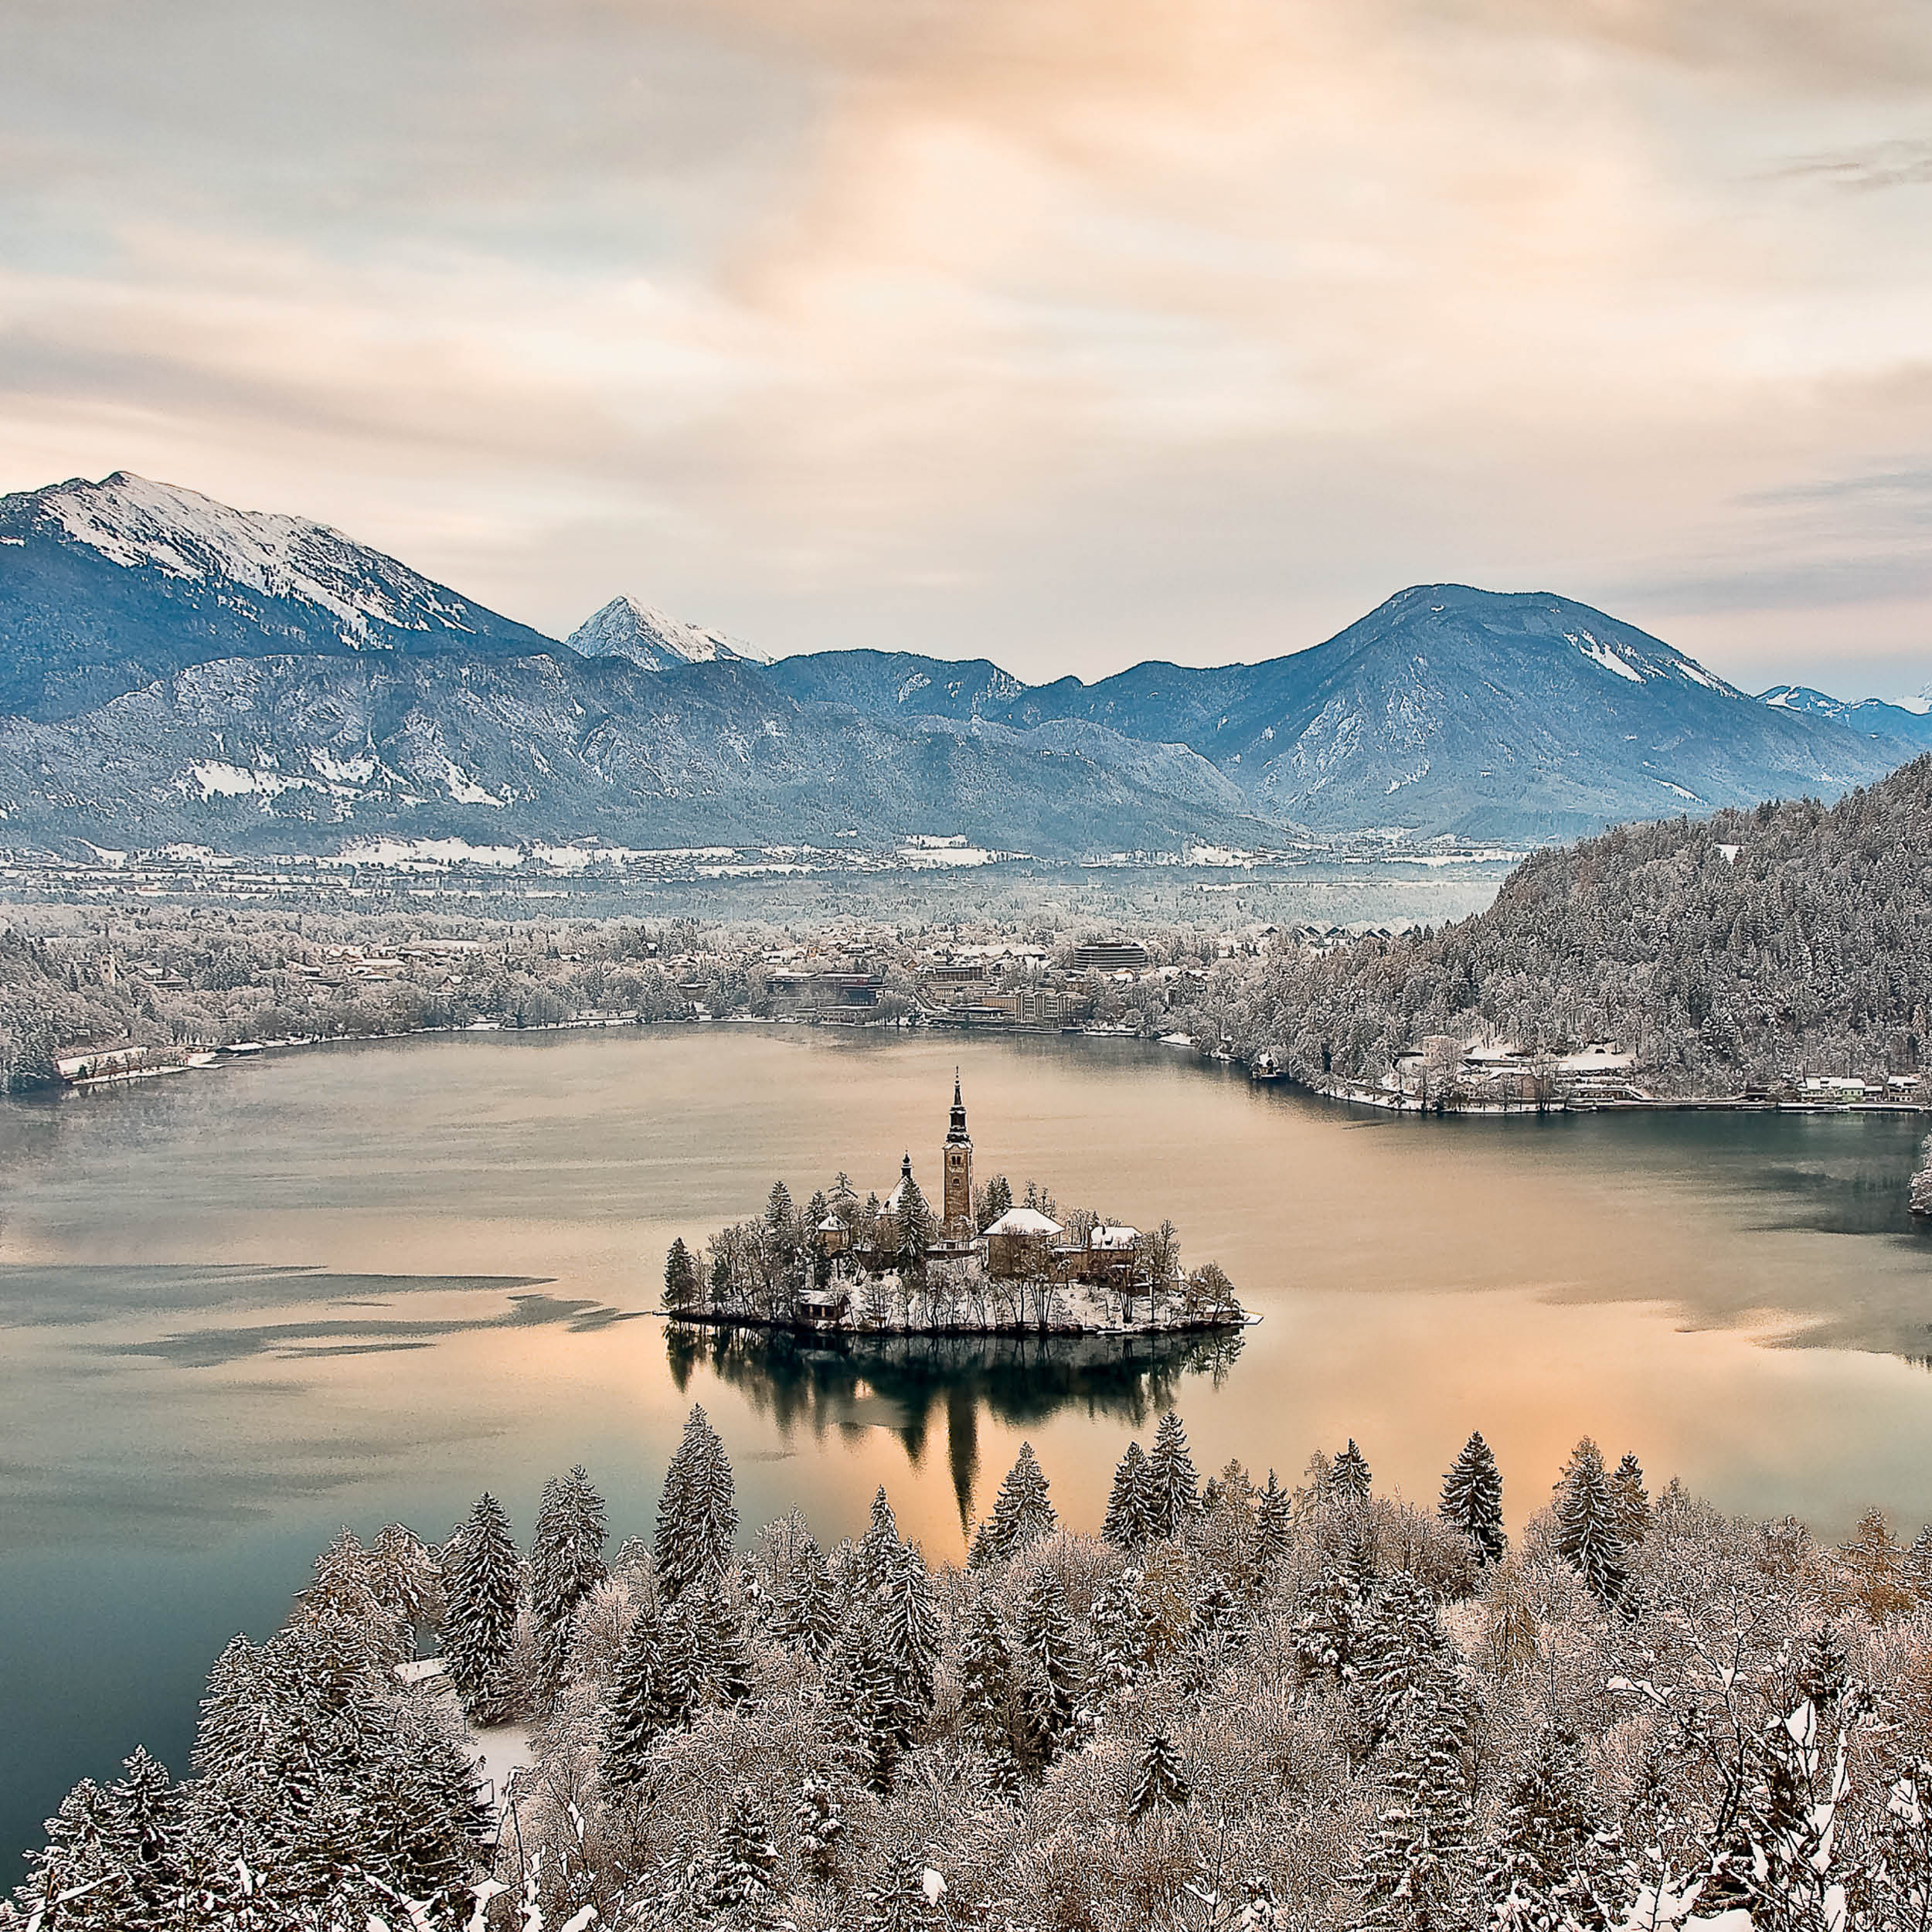 Handcrafted in the Alps - Bled